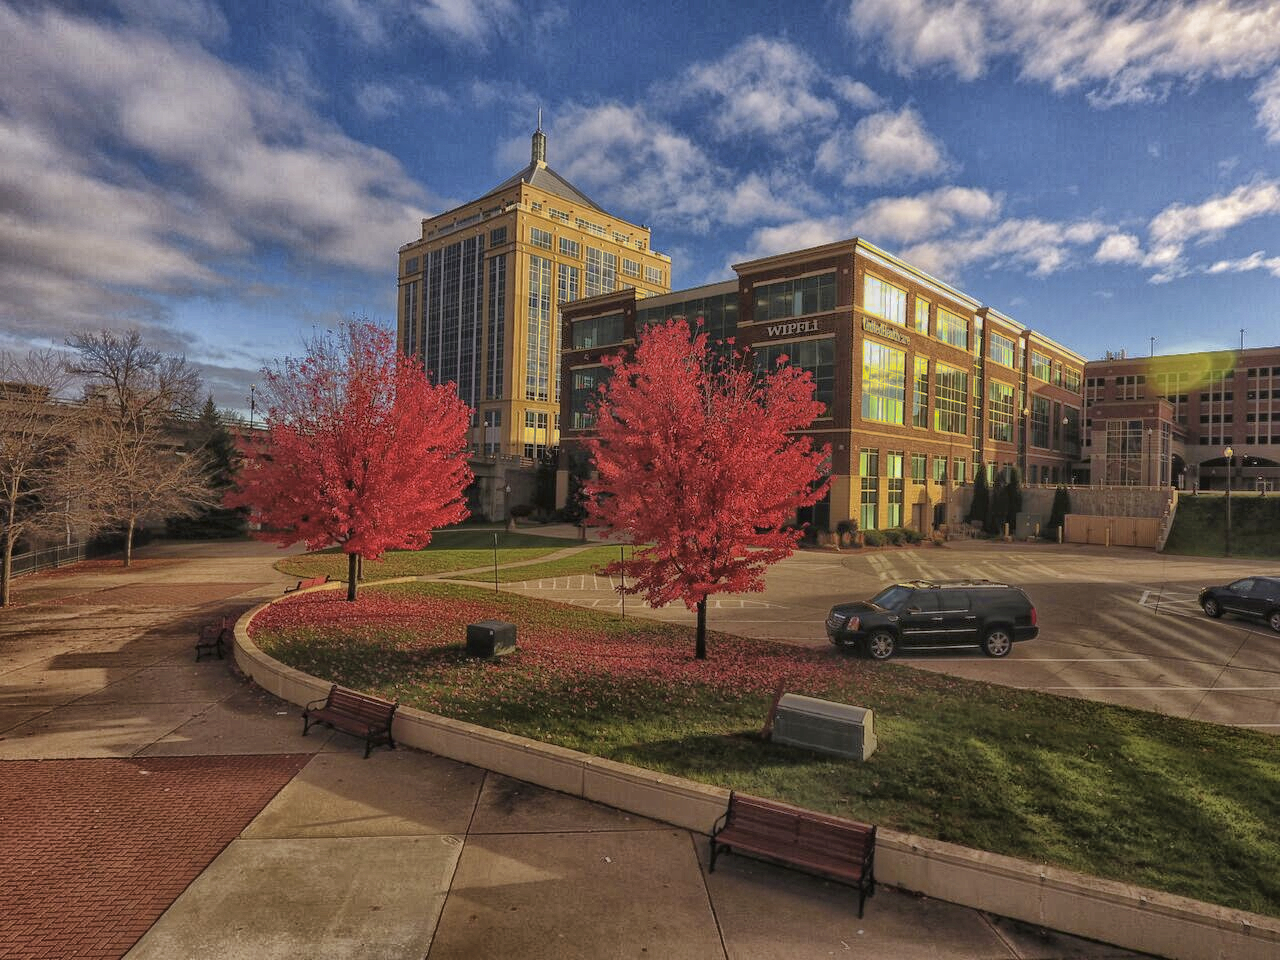 https://assets.sourcemedia.com/c0/cd/7b4cf6134cb898fc2646ce9008d8/wipfli-2016-photo-wausau-office-building-in-fall.jpg